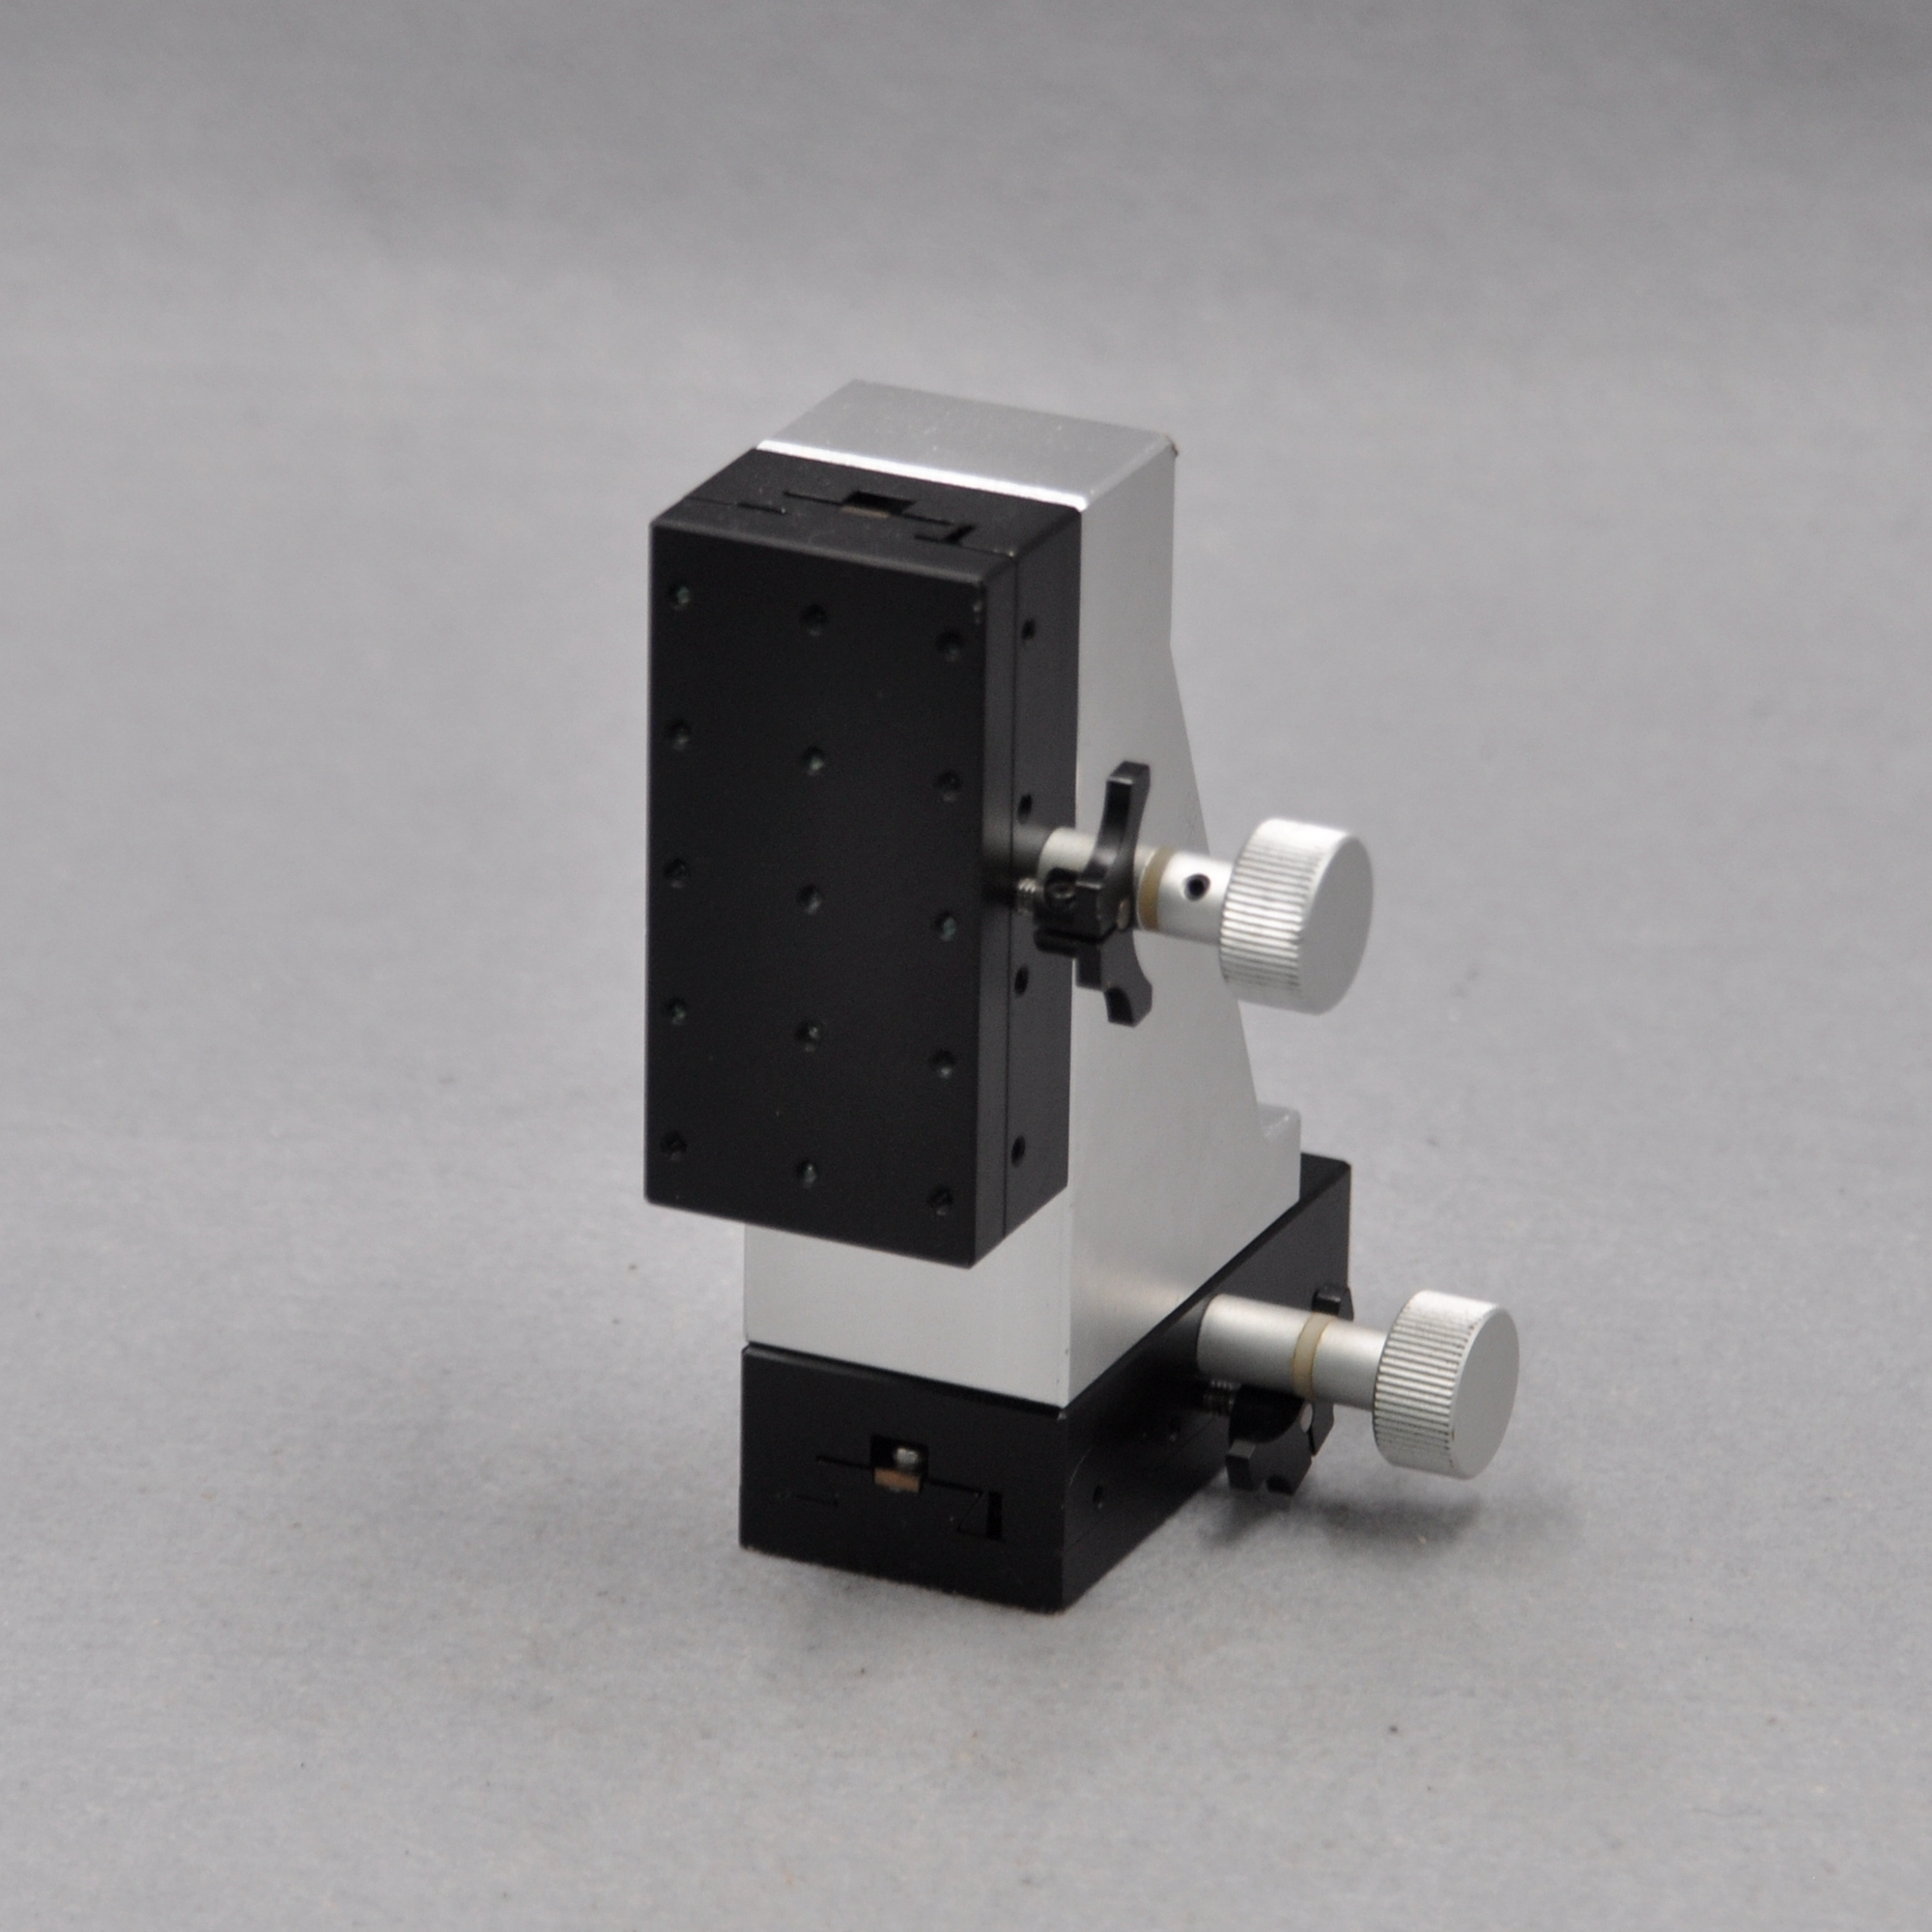 YZ Axis Two-dimensional CHUO 40 * 80mm Manual Precision Lifting Displacement Slide Optical Experiment Tuning Platform